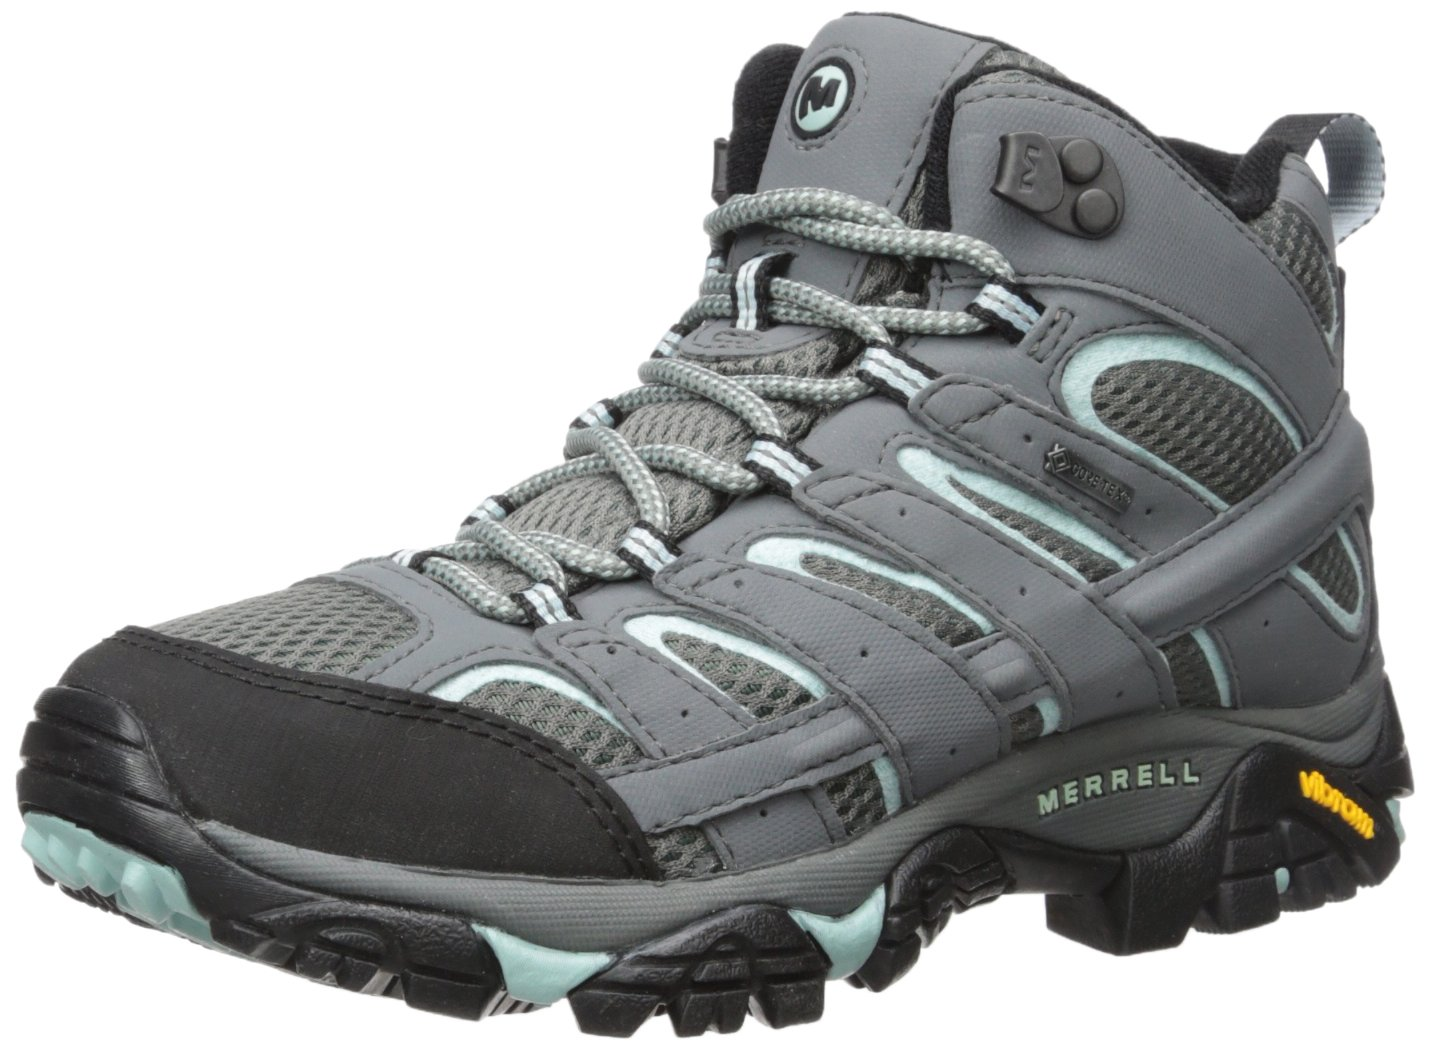 Merrell Women's Moab 2 Mid Gtx Hiking Boot, Sedona Sage, 8.5 W US by Merrell